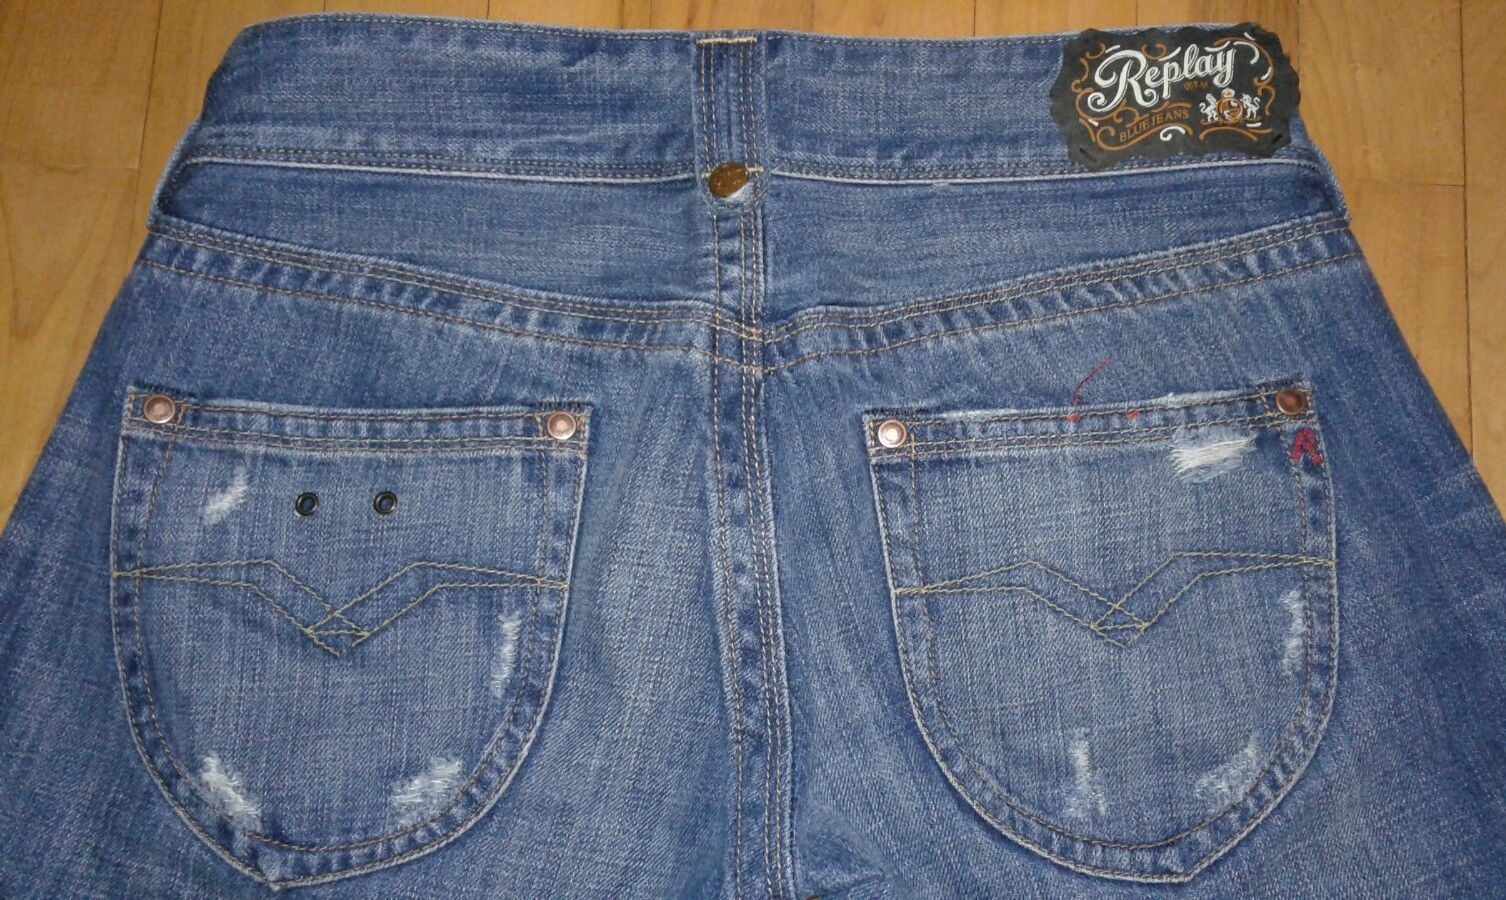 Primary image for Replay Blue Jeans Style WV580 Size W27xI34 Actual  W30 Factory Destroyed